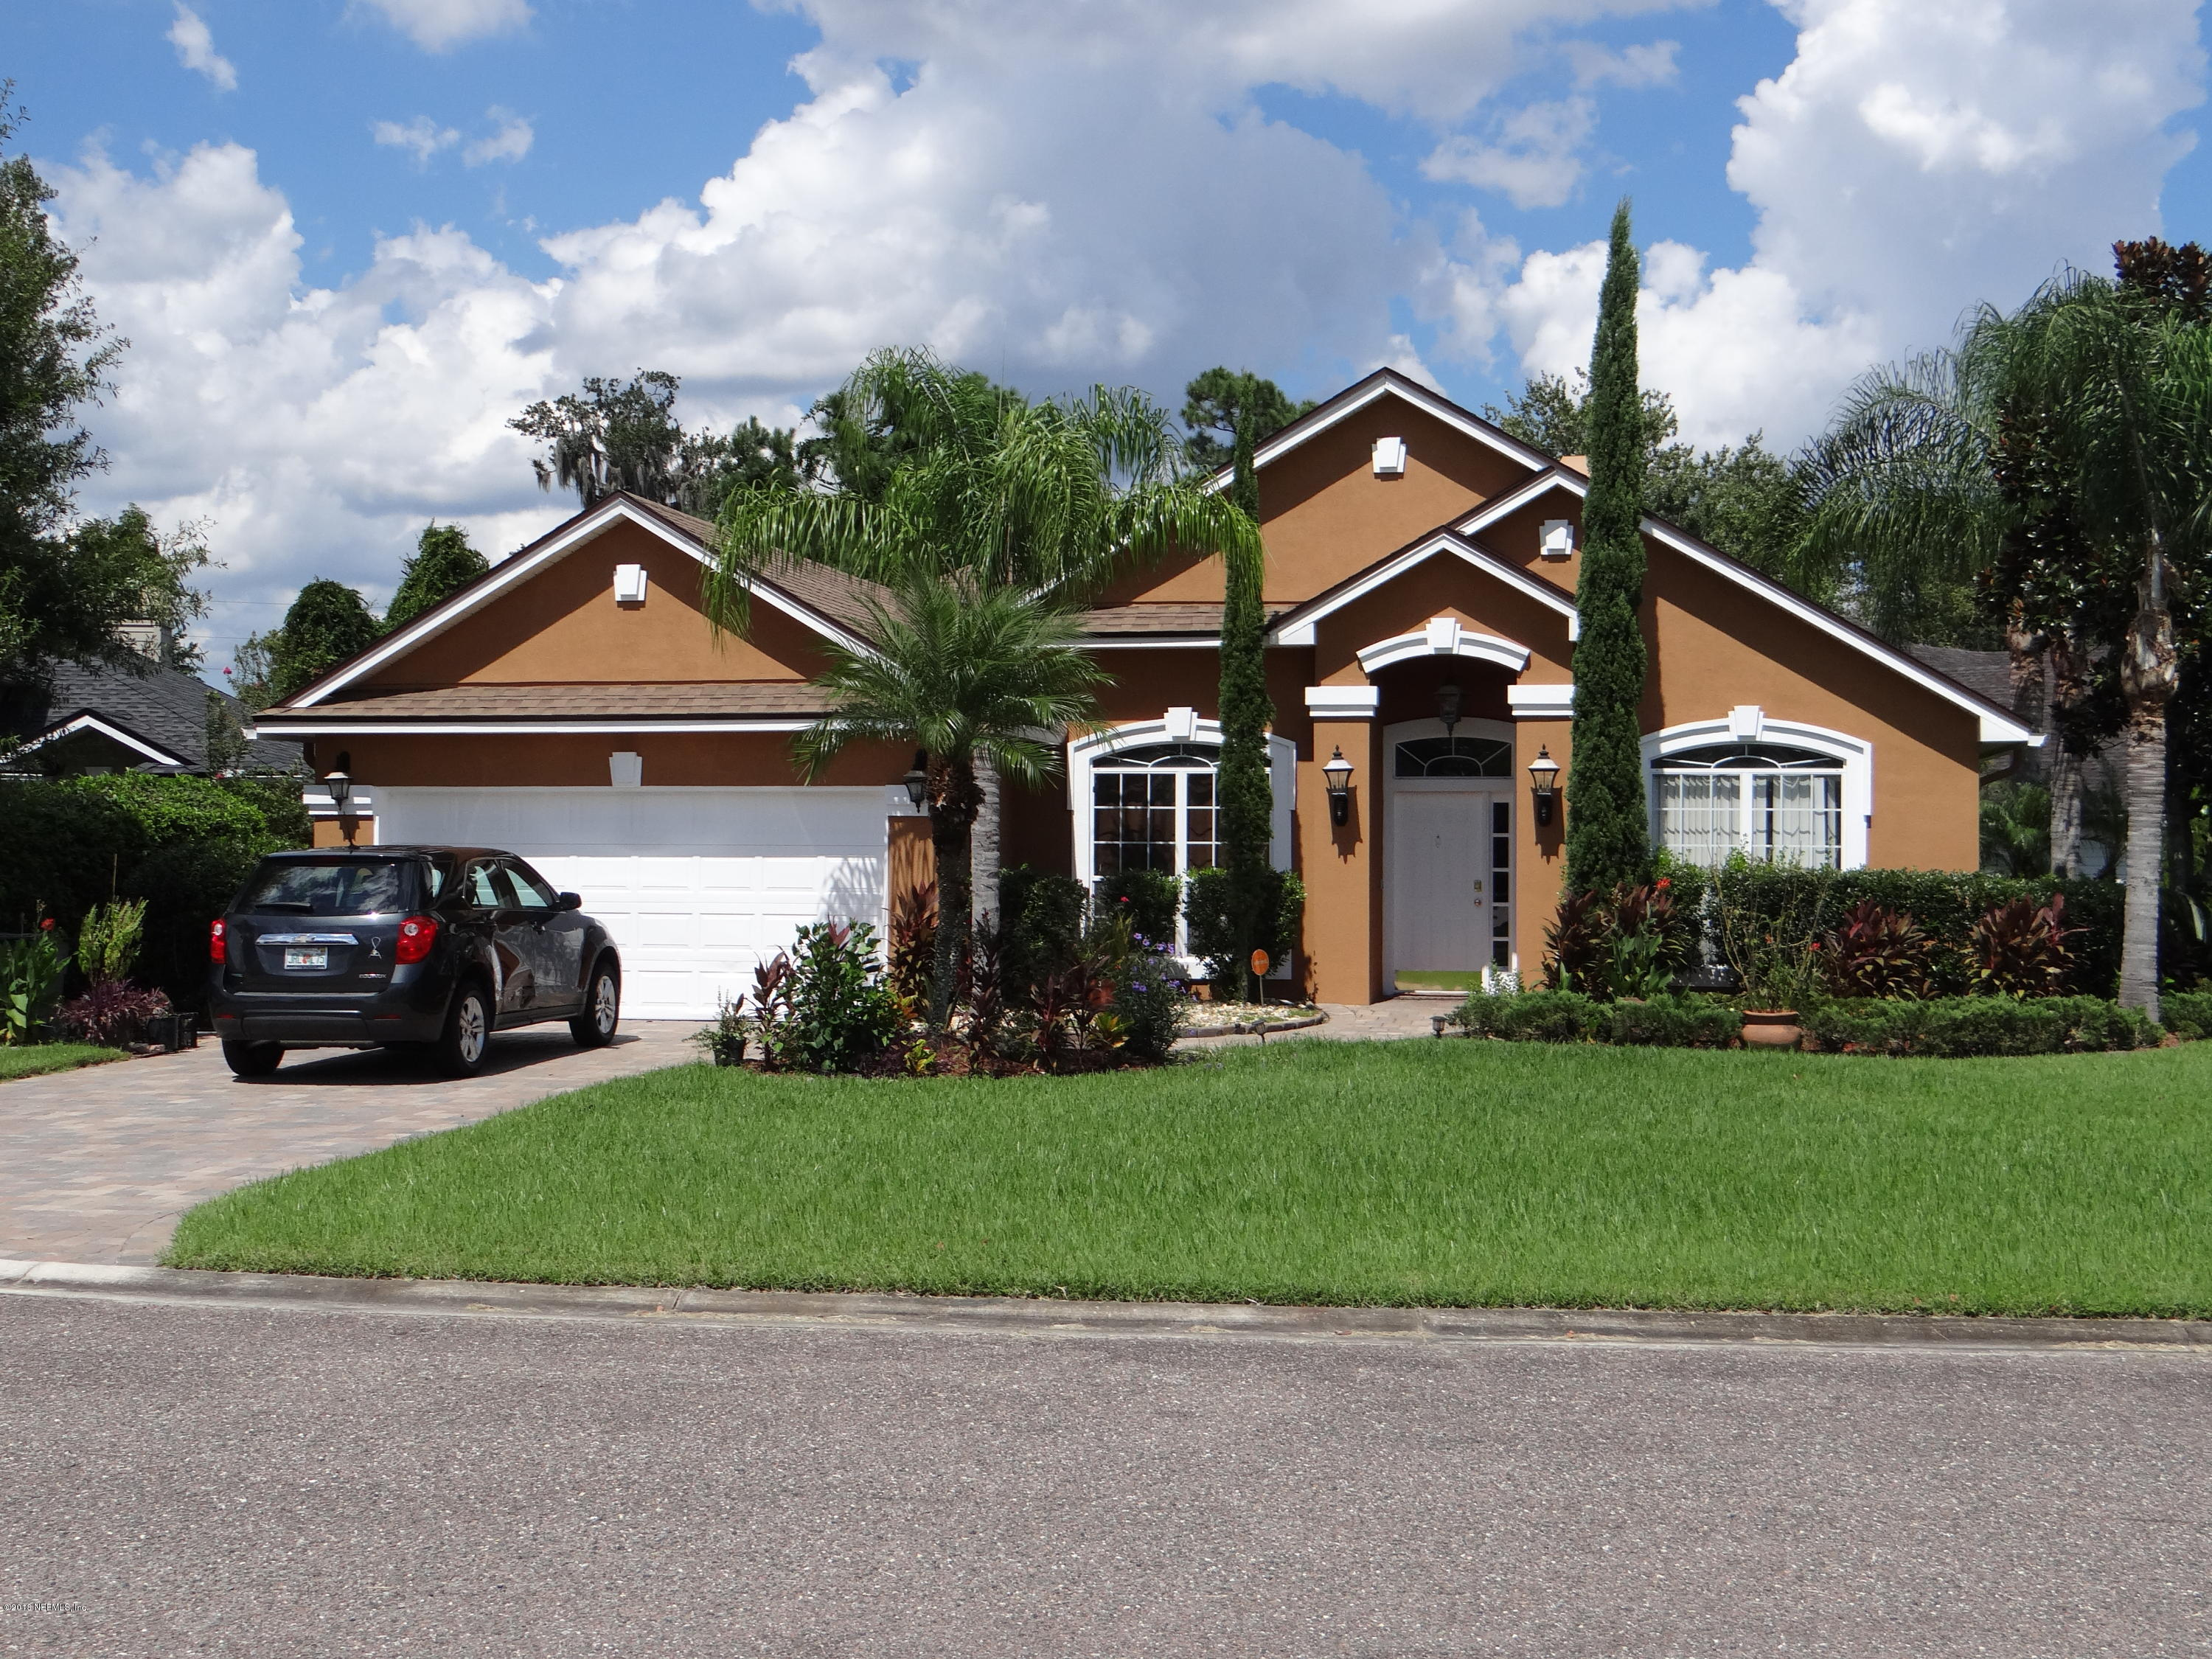 2280 SOARING, FLEMING ISLAND, FLORIDA 32003, 4 Bedrooms Bedrooms, ,2 BathroomsBathrooms,Residential - single family,For sale,SOARING,958190